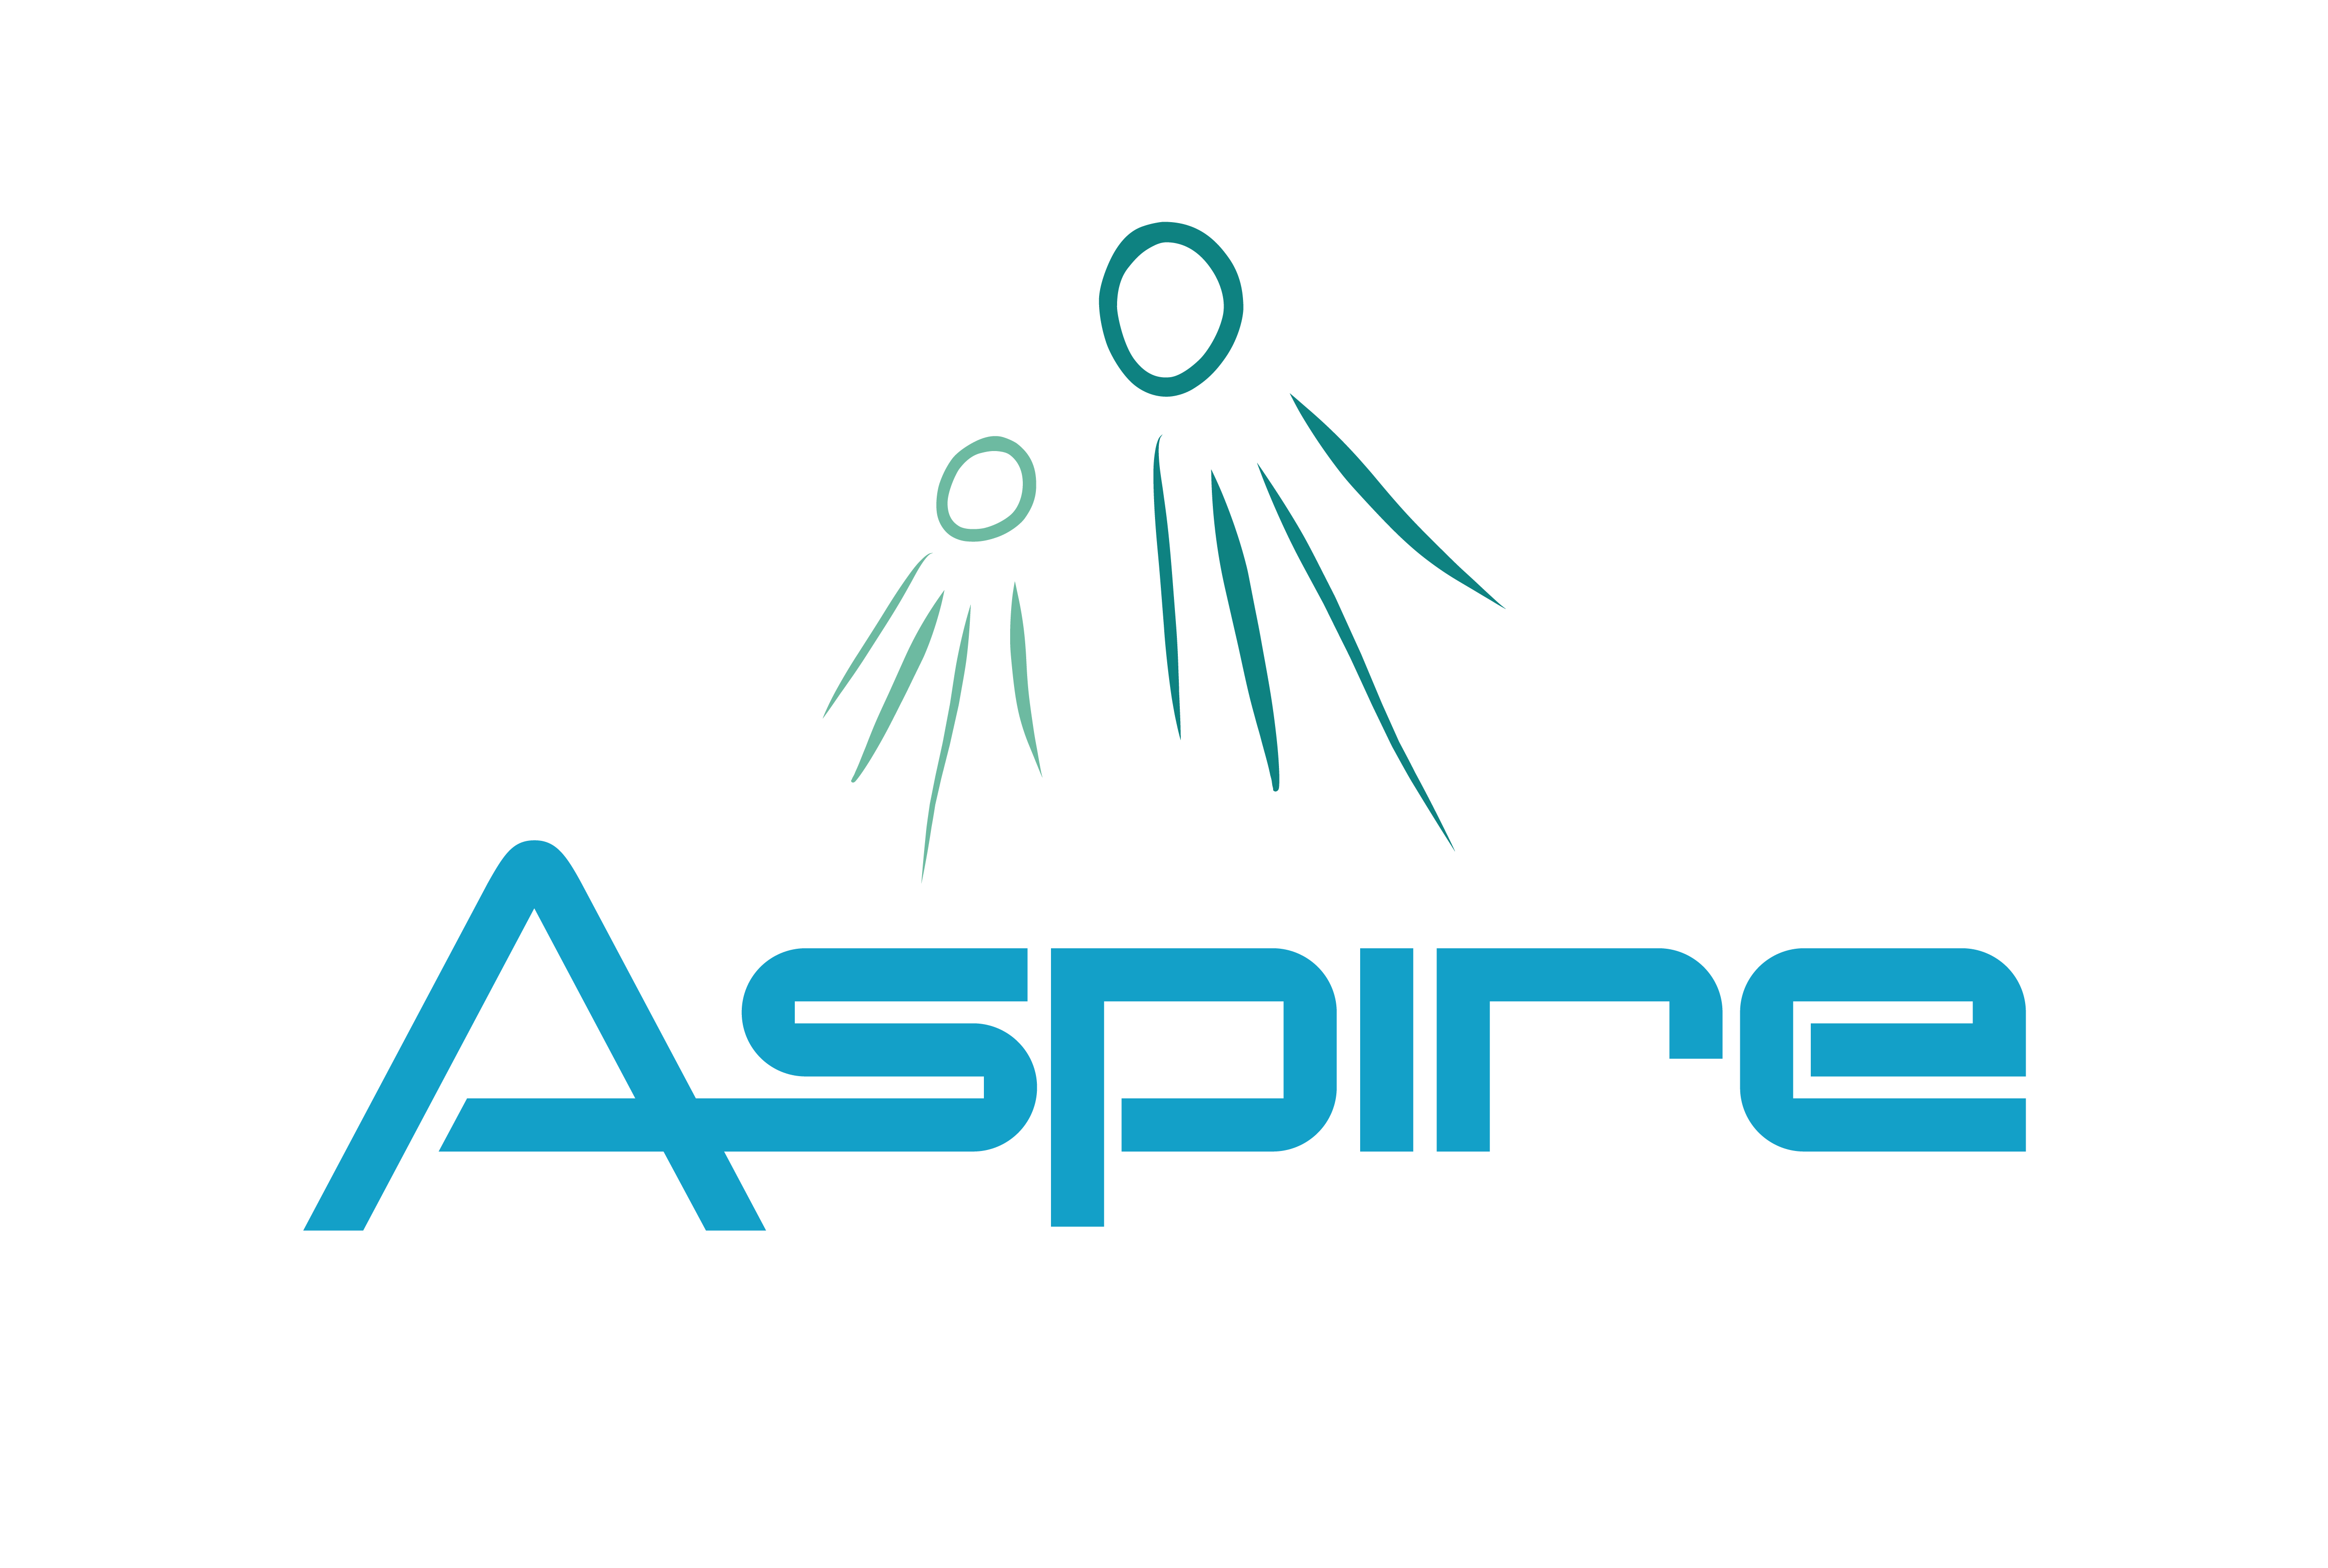 Aspire BC - Cambridgeshire Disability / Inclusive Badminton logo